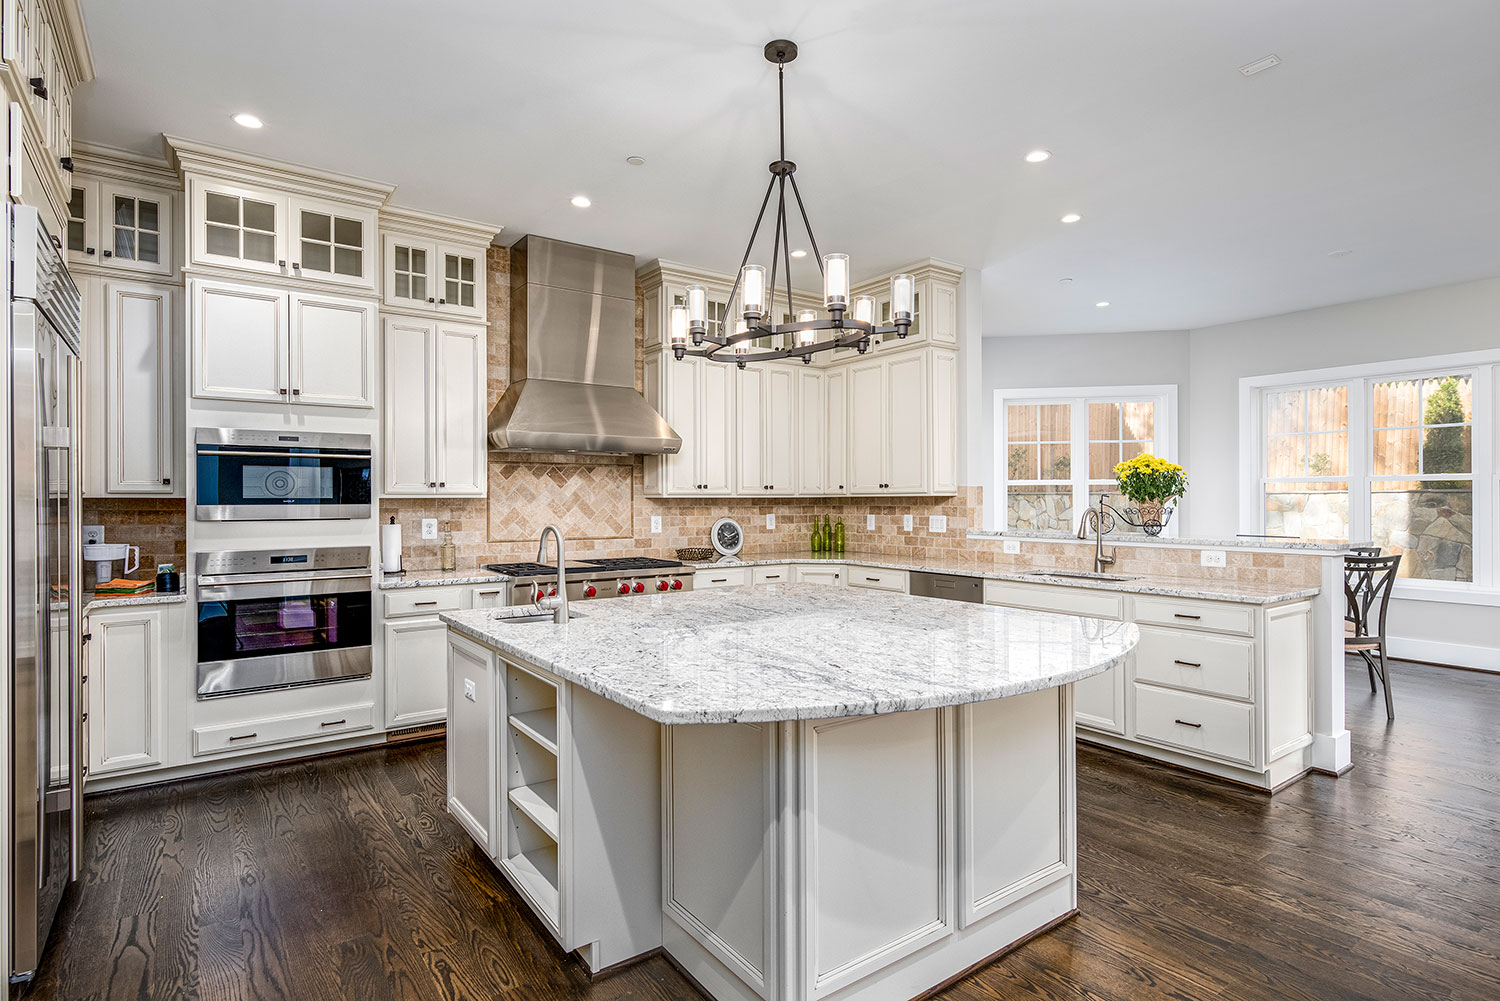 Kitchens - Classic Homes on Model Kitchens  id=80651